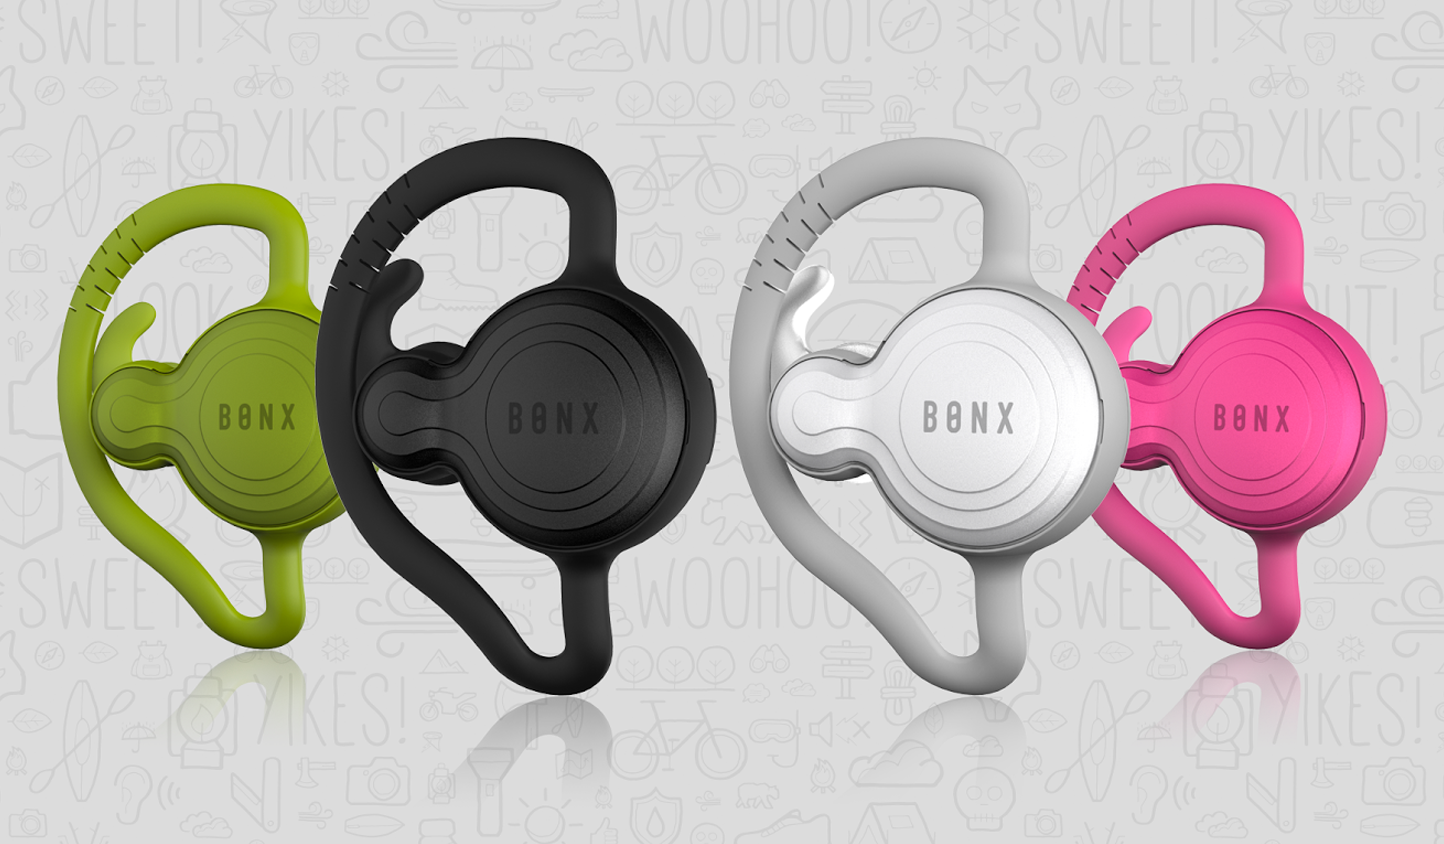 Bonx Grip Bluetooth Earpiece for Hands-free Group Talk